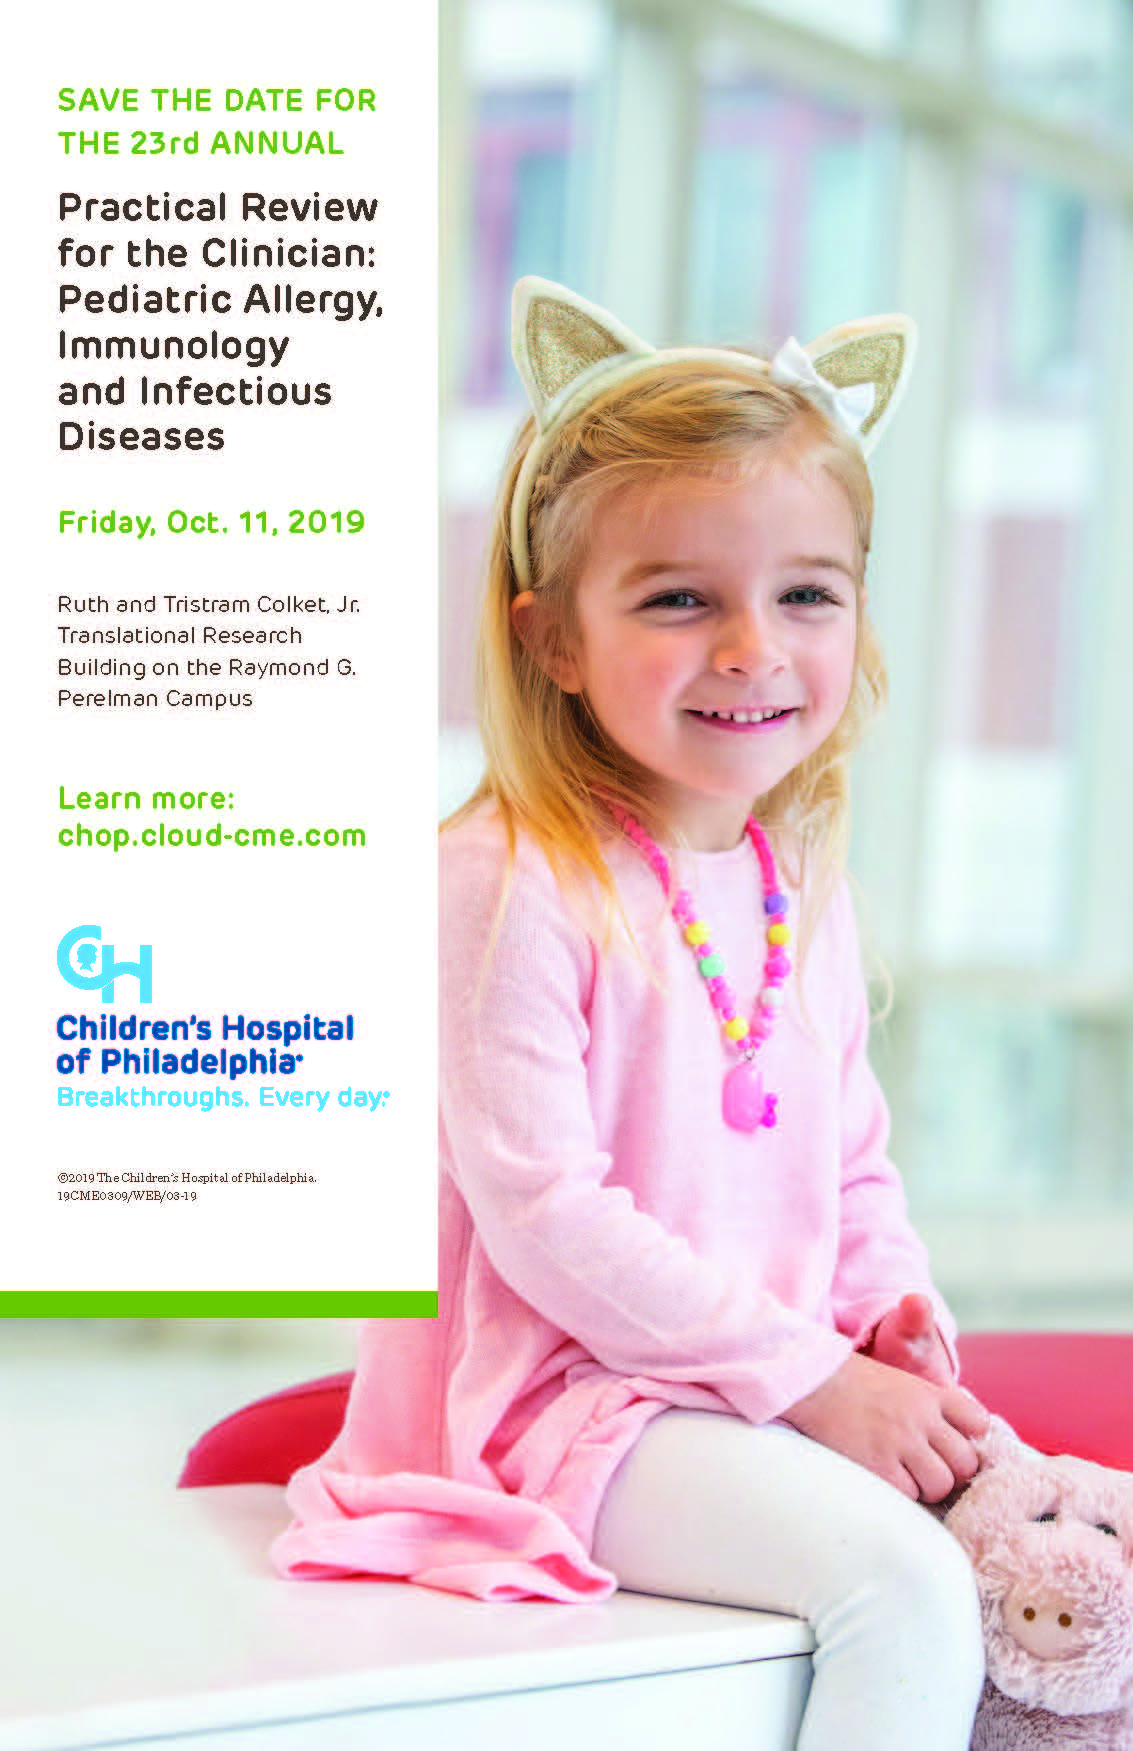 23rd ANNUAL Practical Review for the Clinician: Pediatric Allergy, Immunology and Infectious Diseases Banner